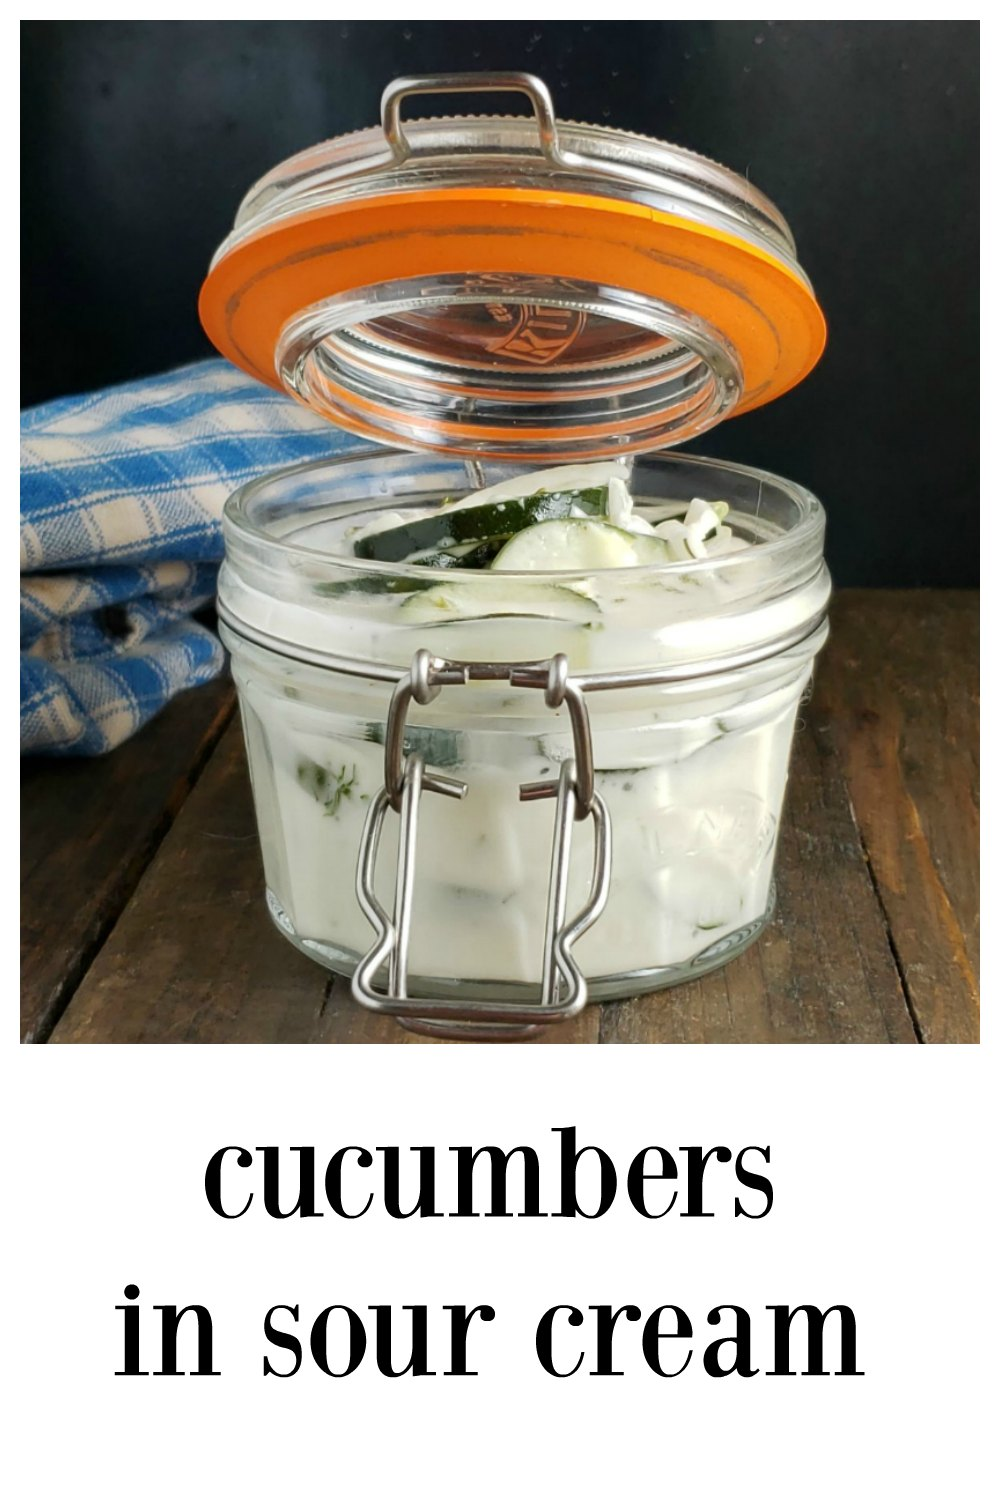 Cucumber Sour Cream Salad is a classic, just like Grandma made. Cool, creamy and delish it's the perfect way to take advantage of summer's bounty! #CucumberSalad #CucumberSourCreamSalad #GermanRecipes #CucumberRecipe